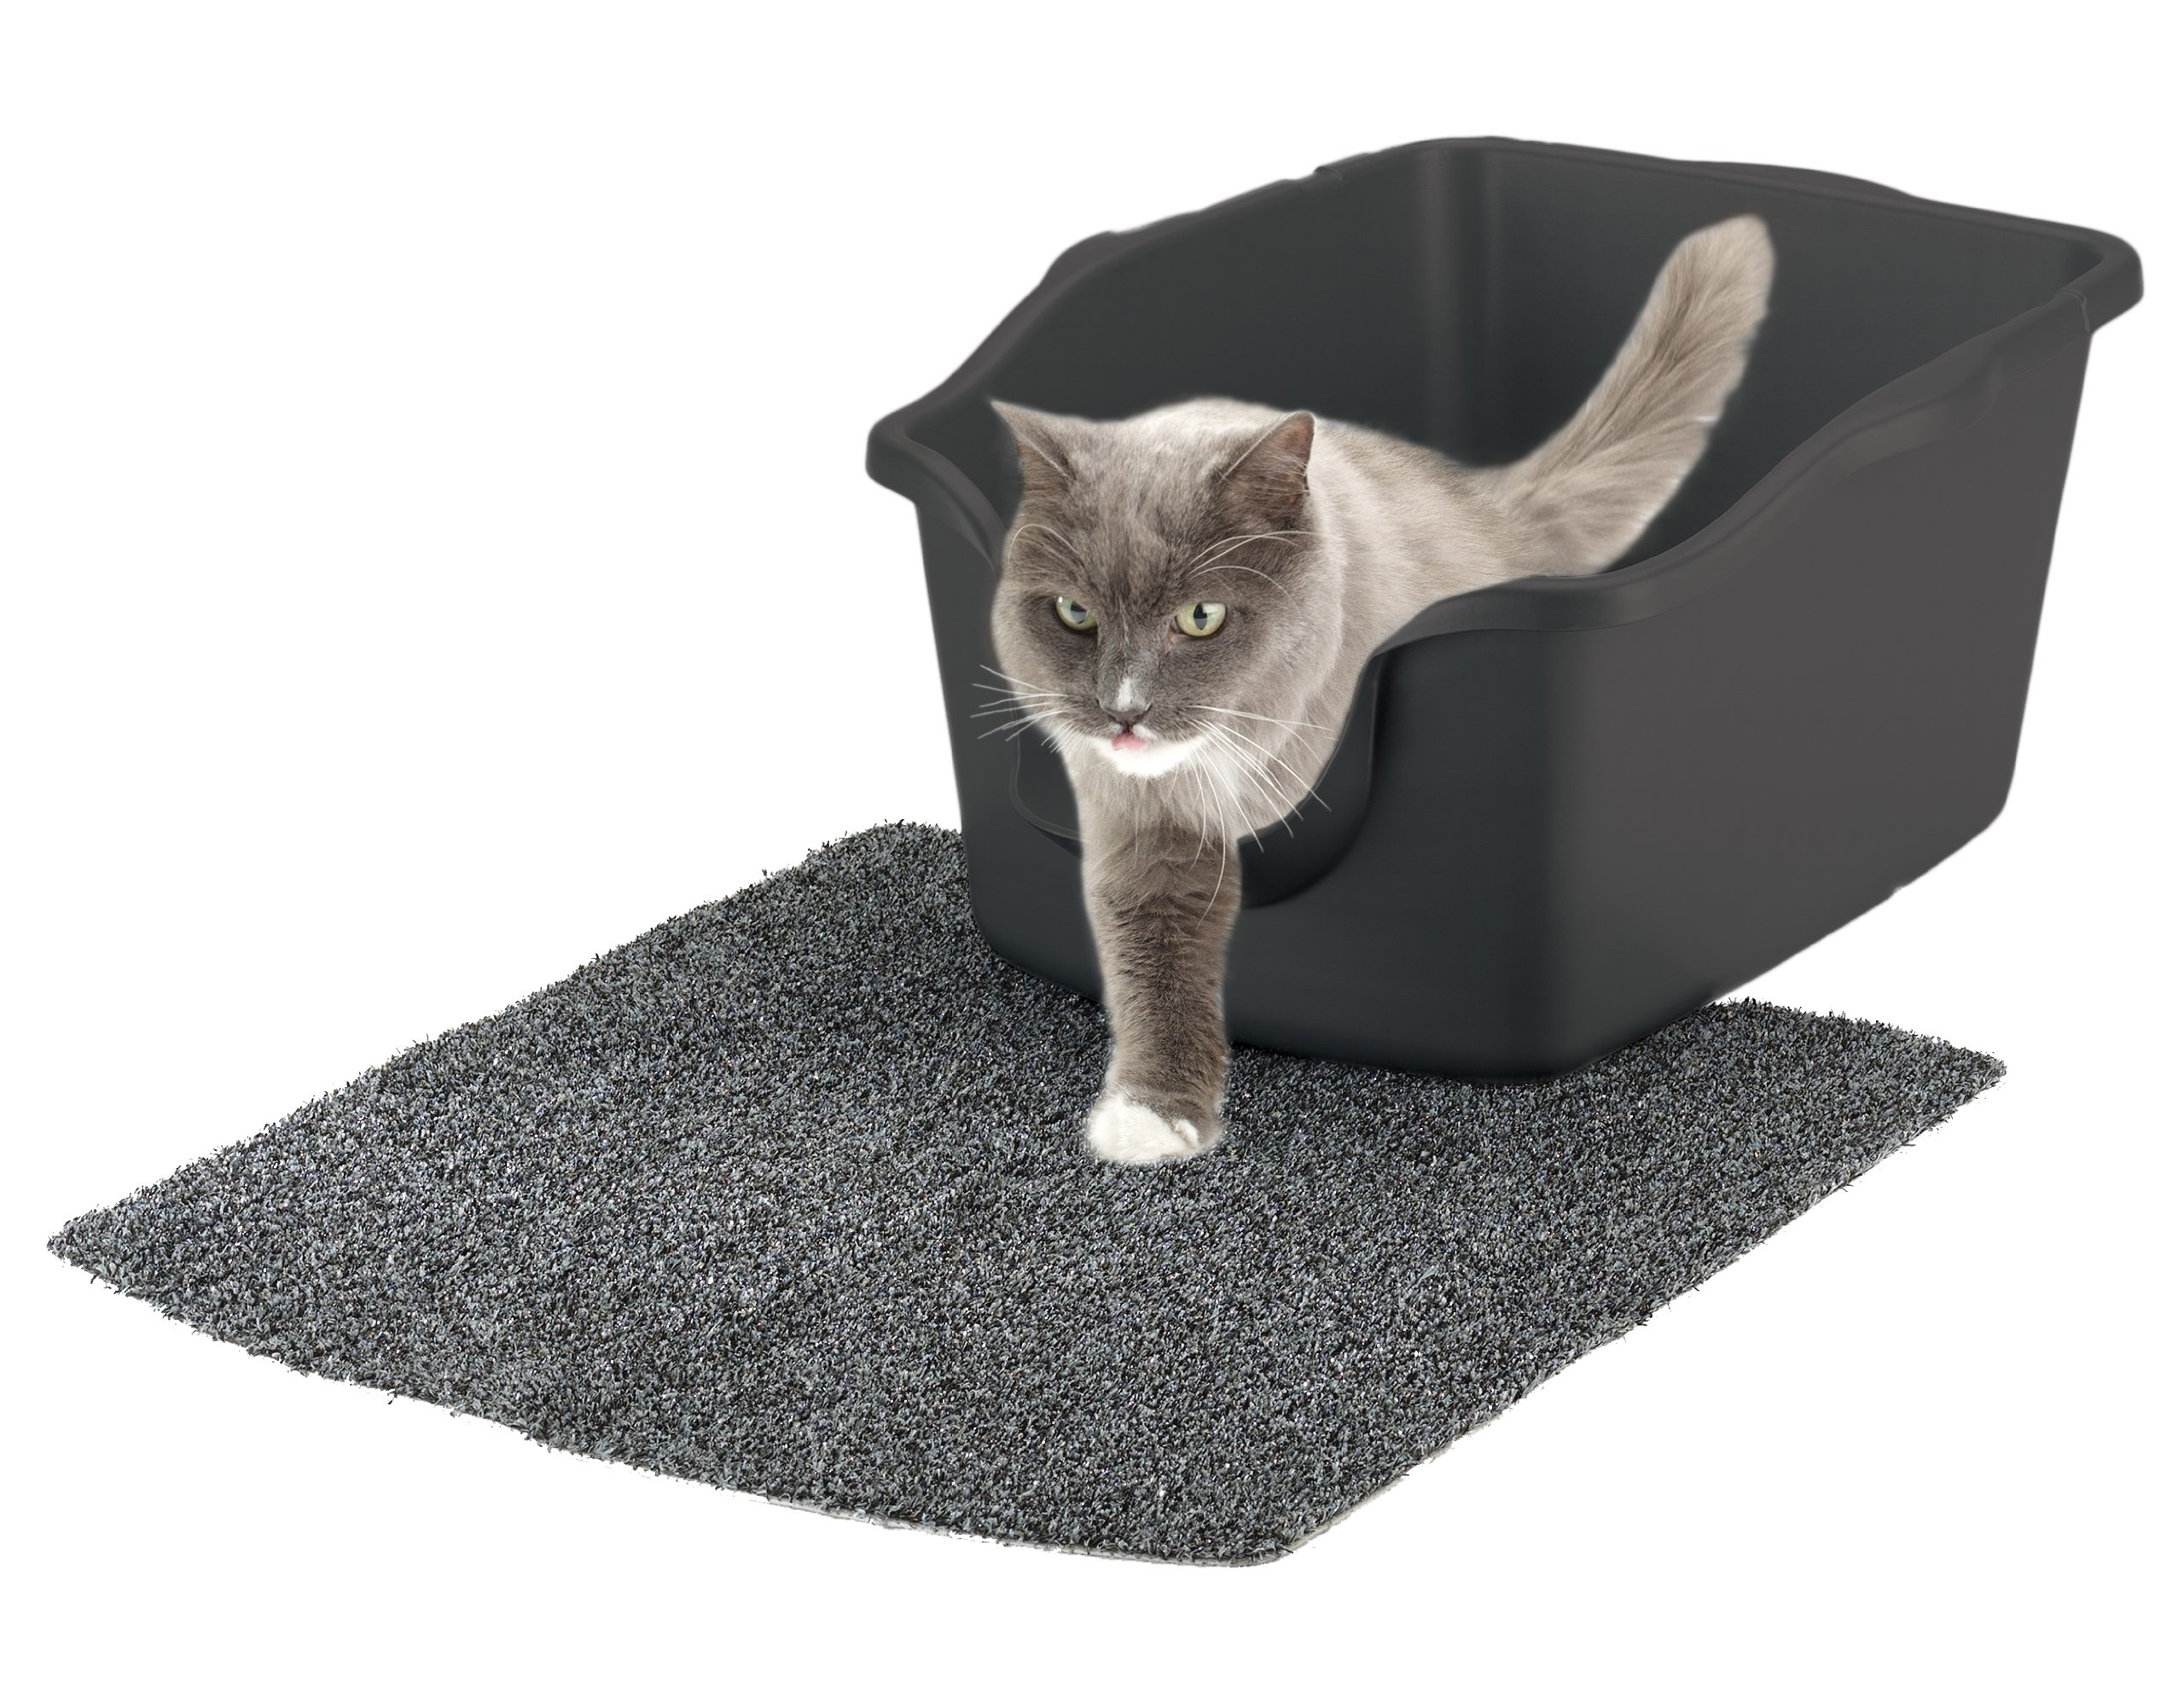 Nature's Miracle High-Sided Litter Box, 23 x 18.5 x 11 inches by Nature's Miracle